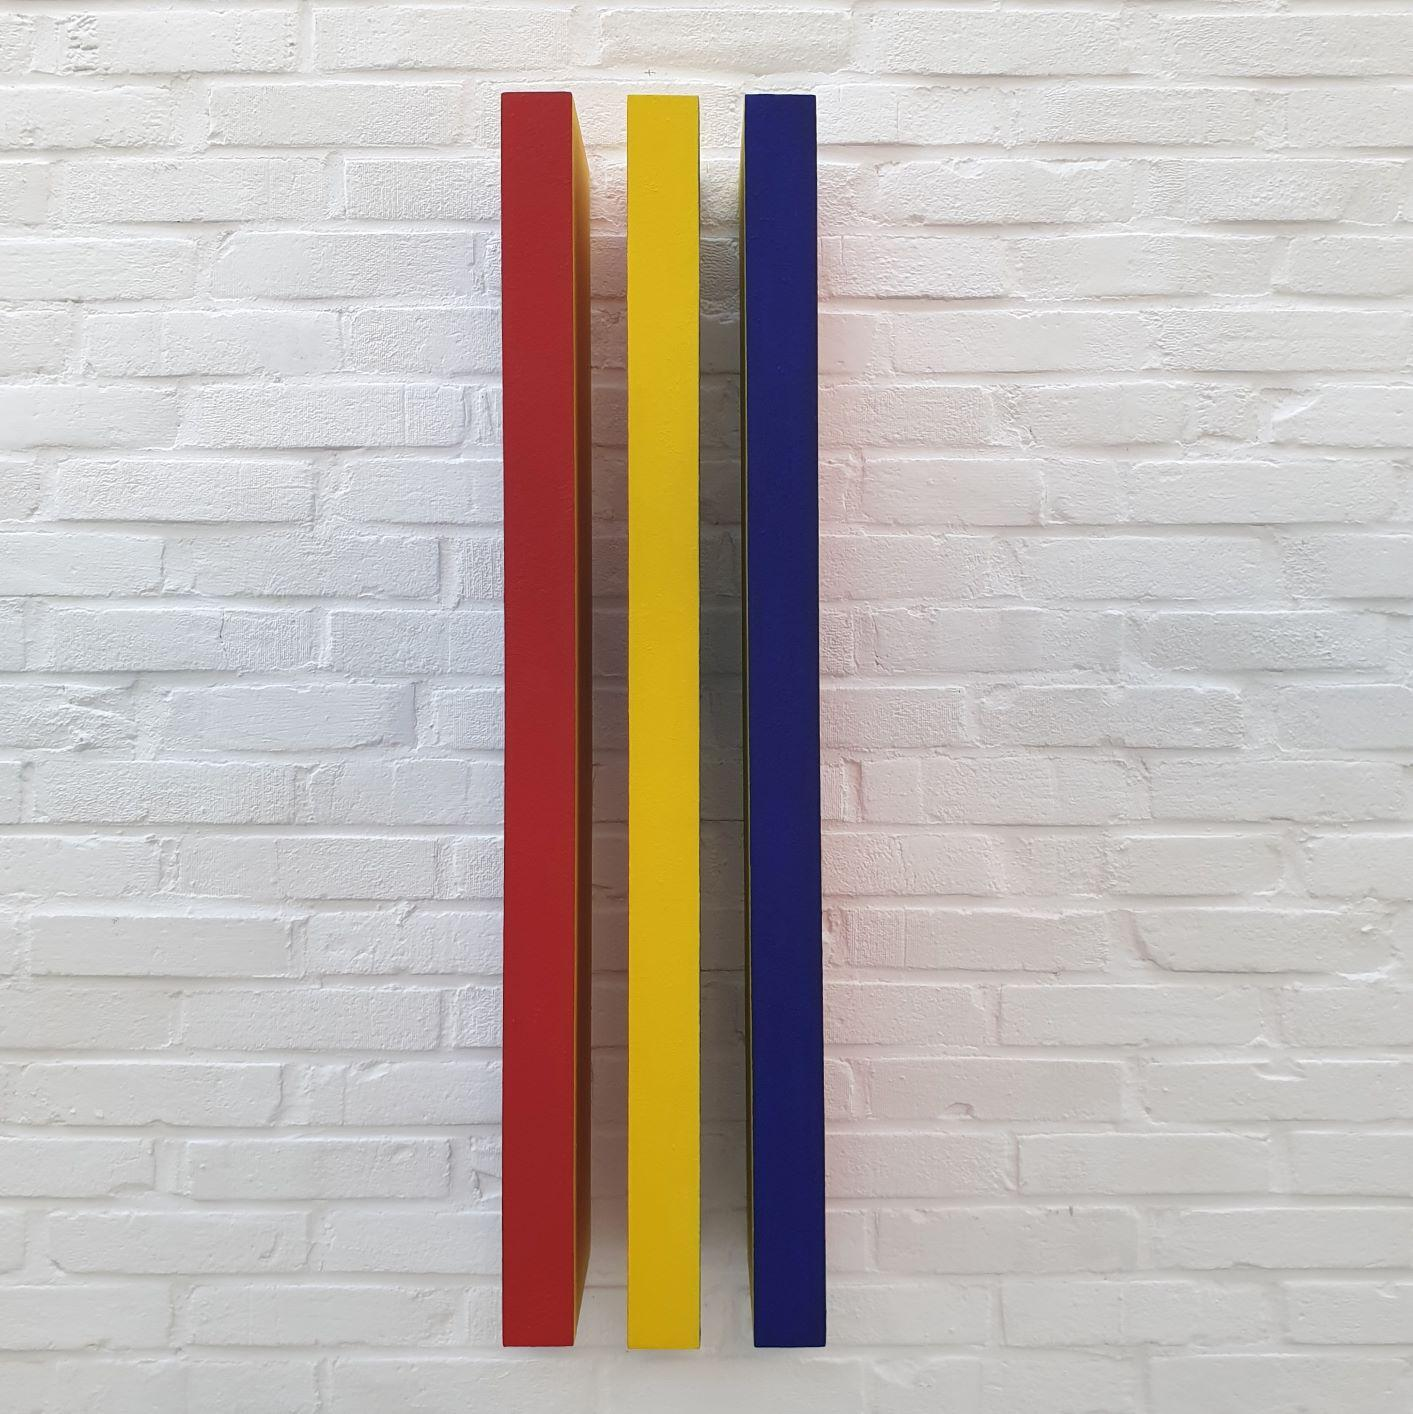 Réflexion des couleurs - red yellow blue contemporary modern painting relief